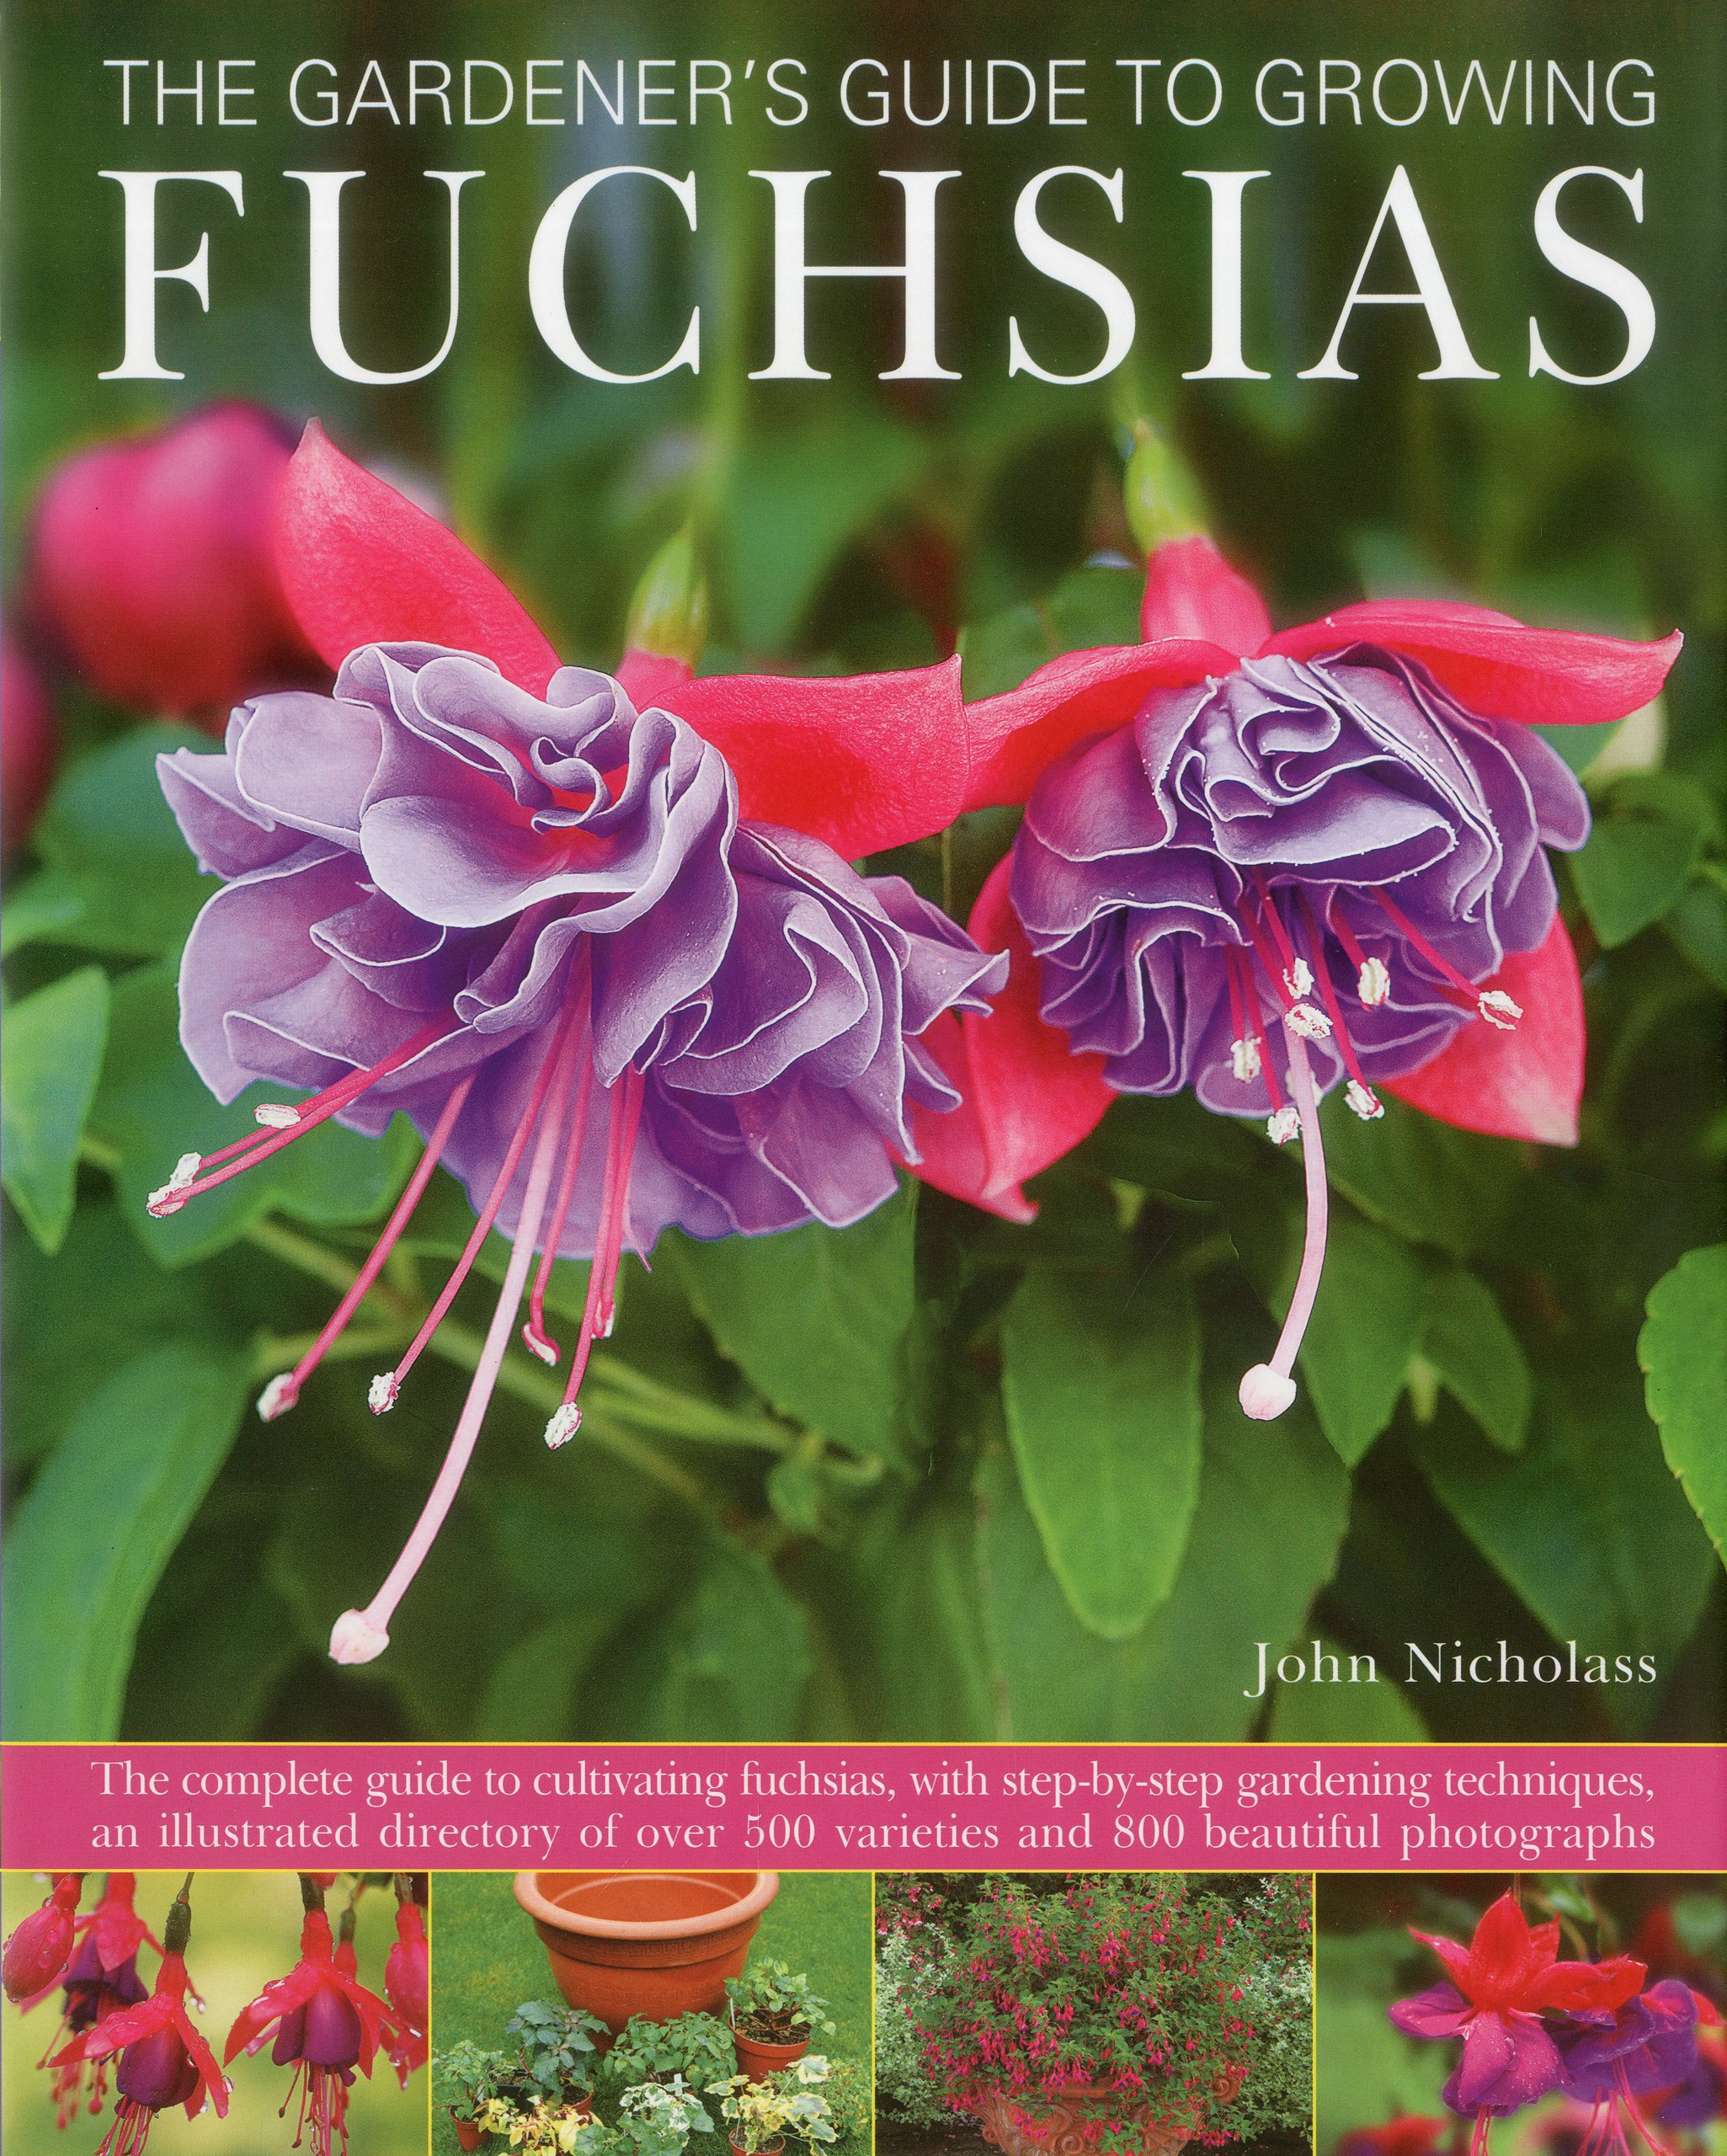 The Gardener's Guide to Growing Fuchsias: The complete guide to cultivating fuchsias, with step-by-step gardening techniques, an illustrated directory ... 500 varieties and 800 beautiful photographs